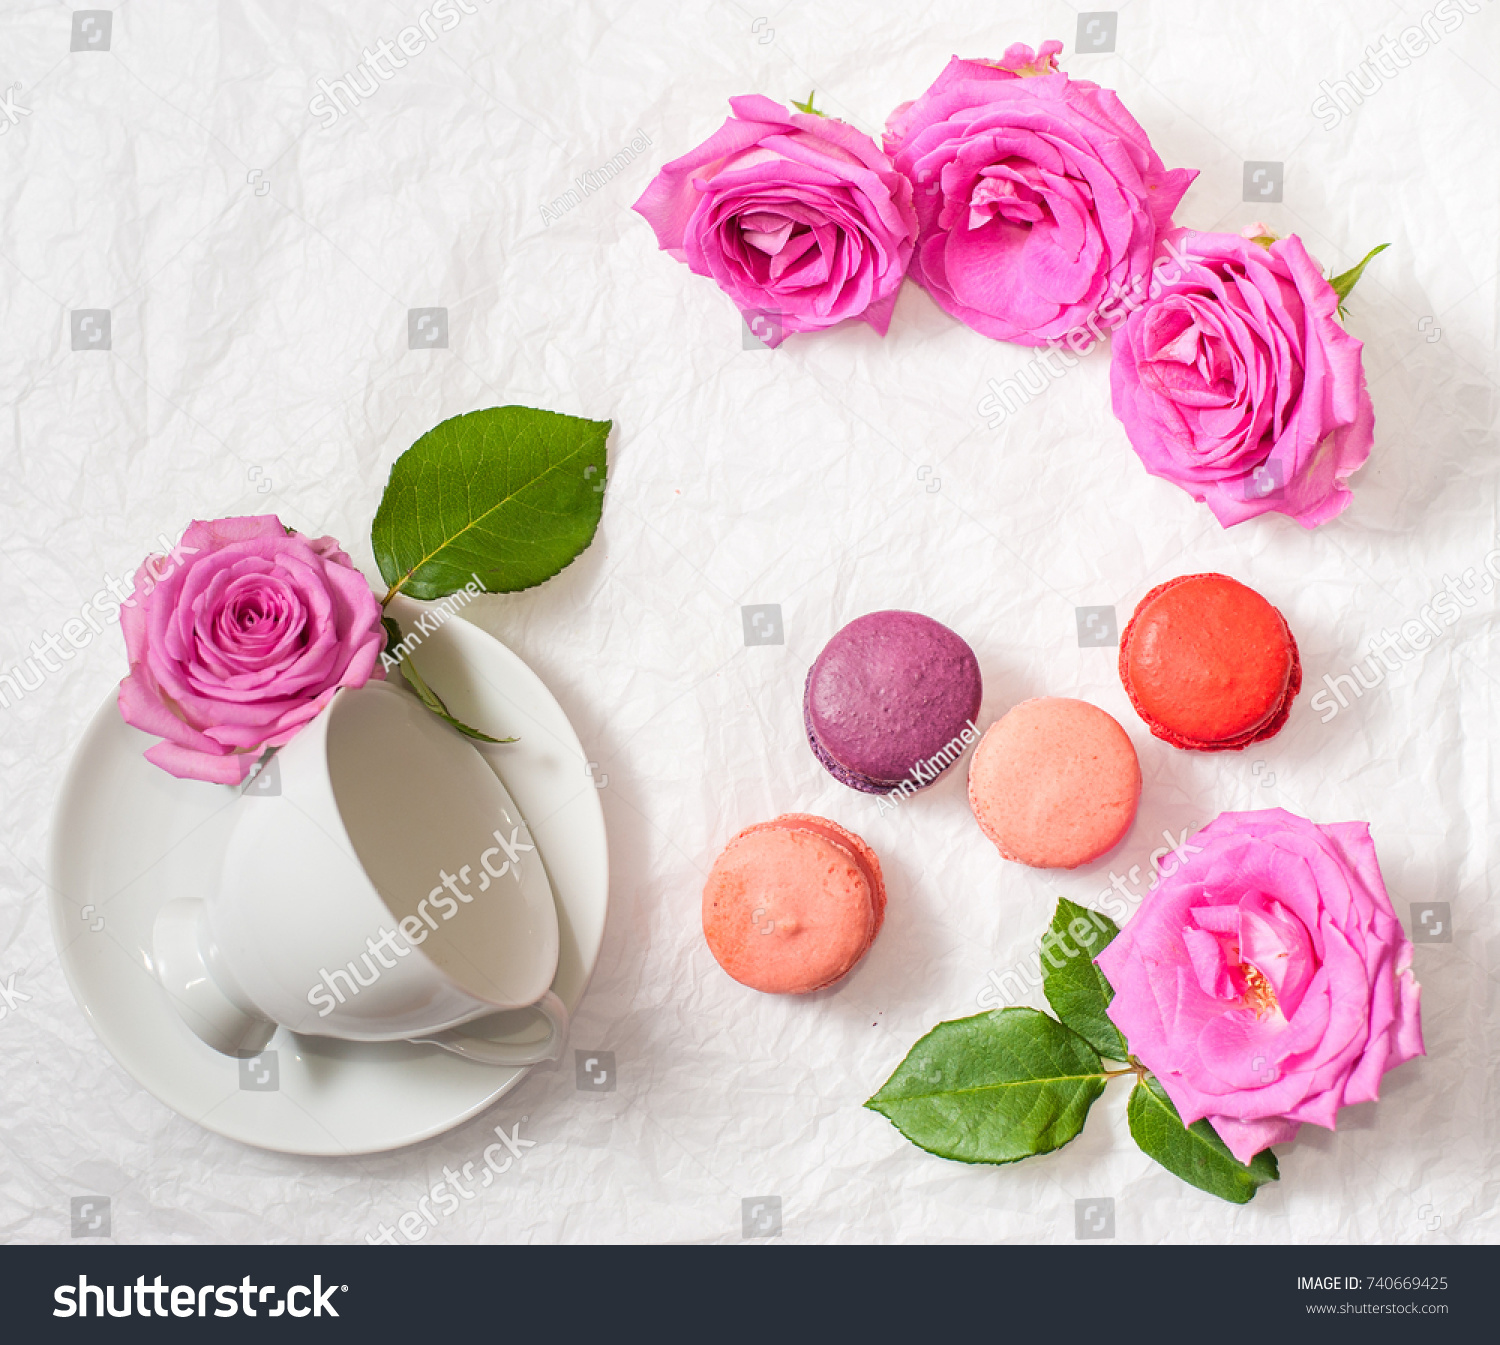 Colorful Macarons Surrounded By Vivid Pink Rose Flowers And A White